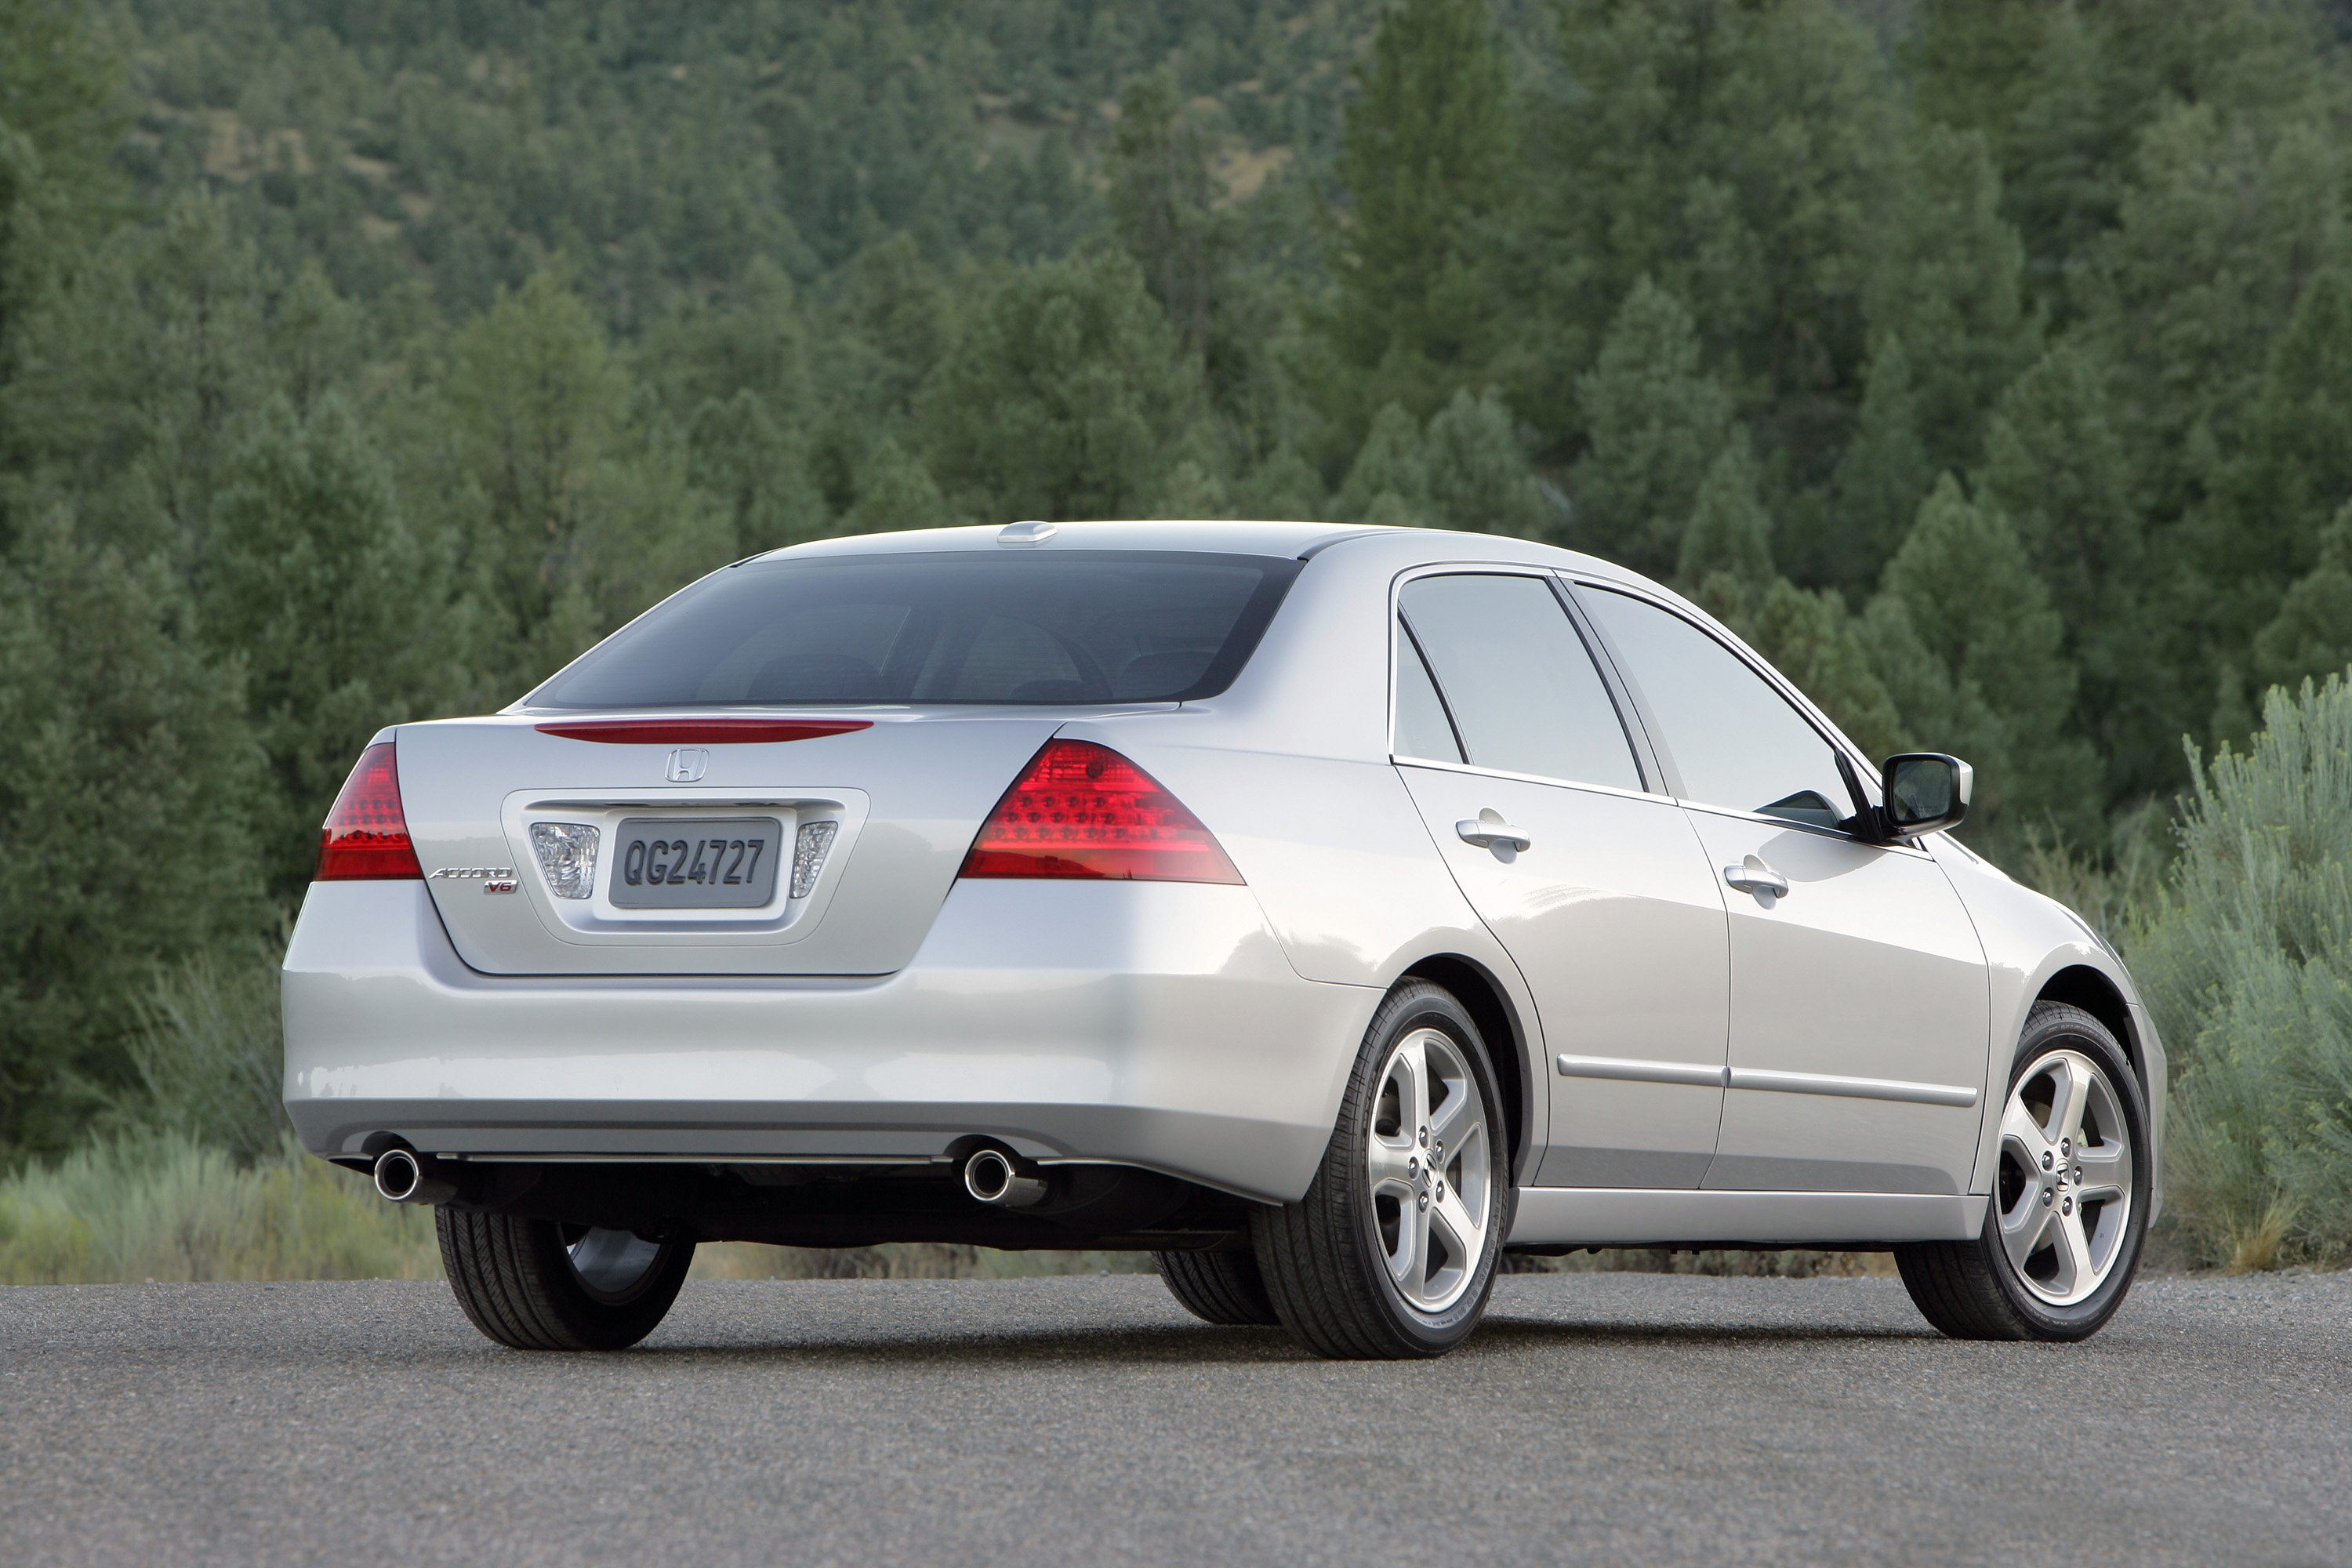 2006 Honda Accord Review - Top Speed